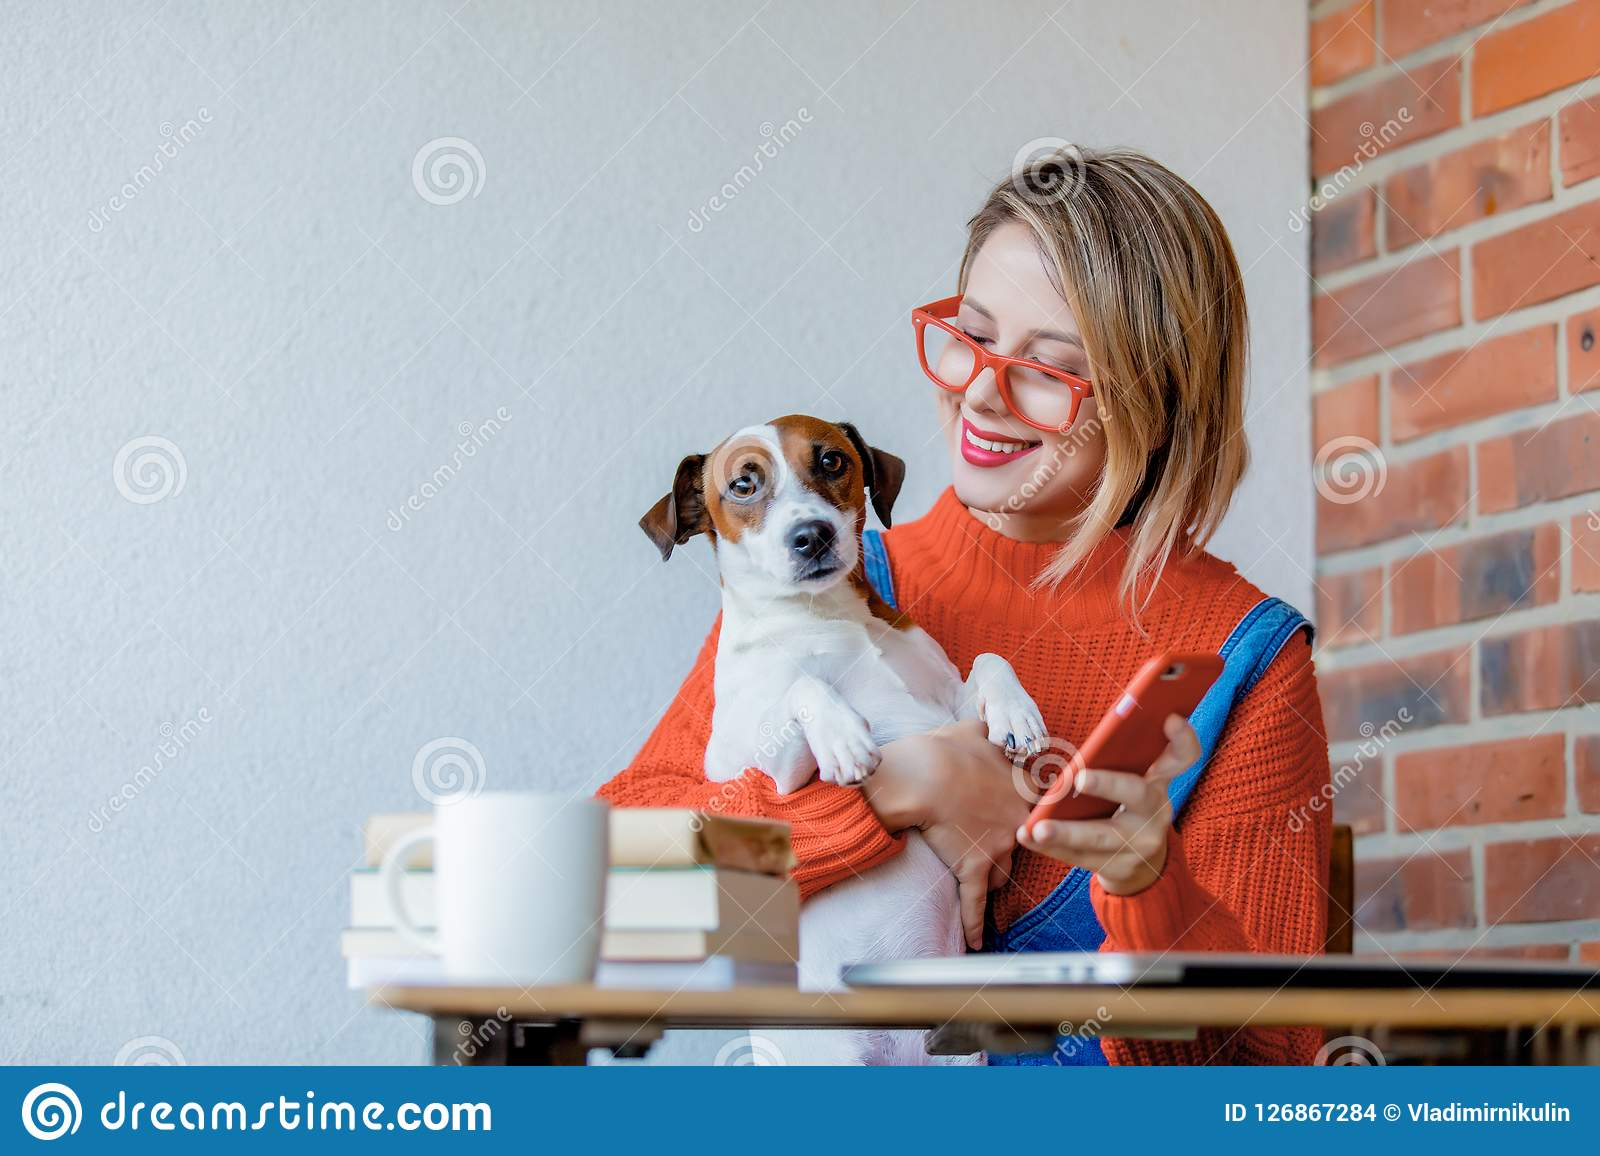 Girl sititng at table with computer and dog